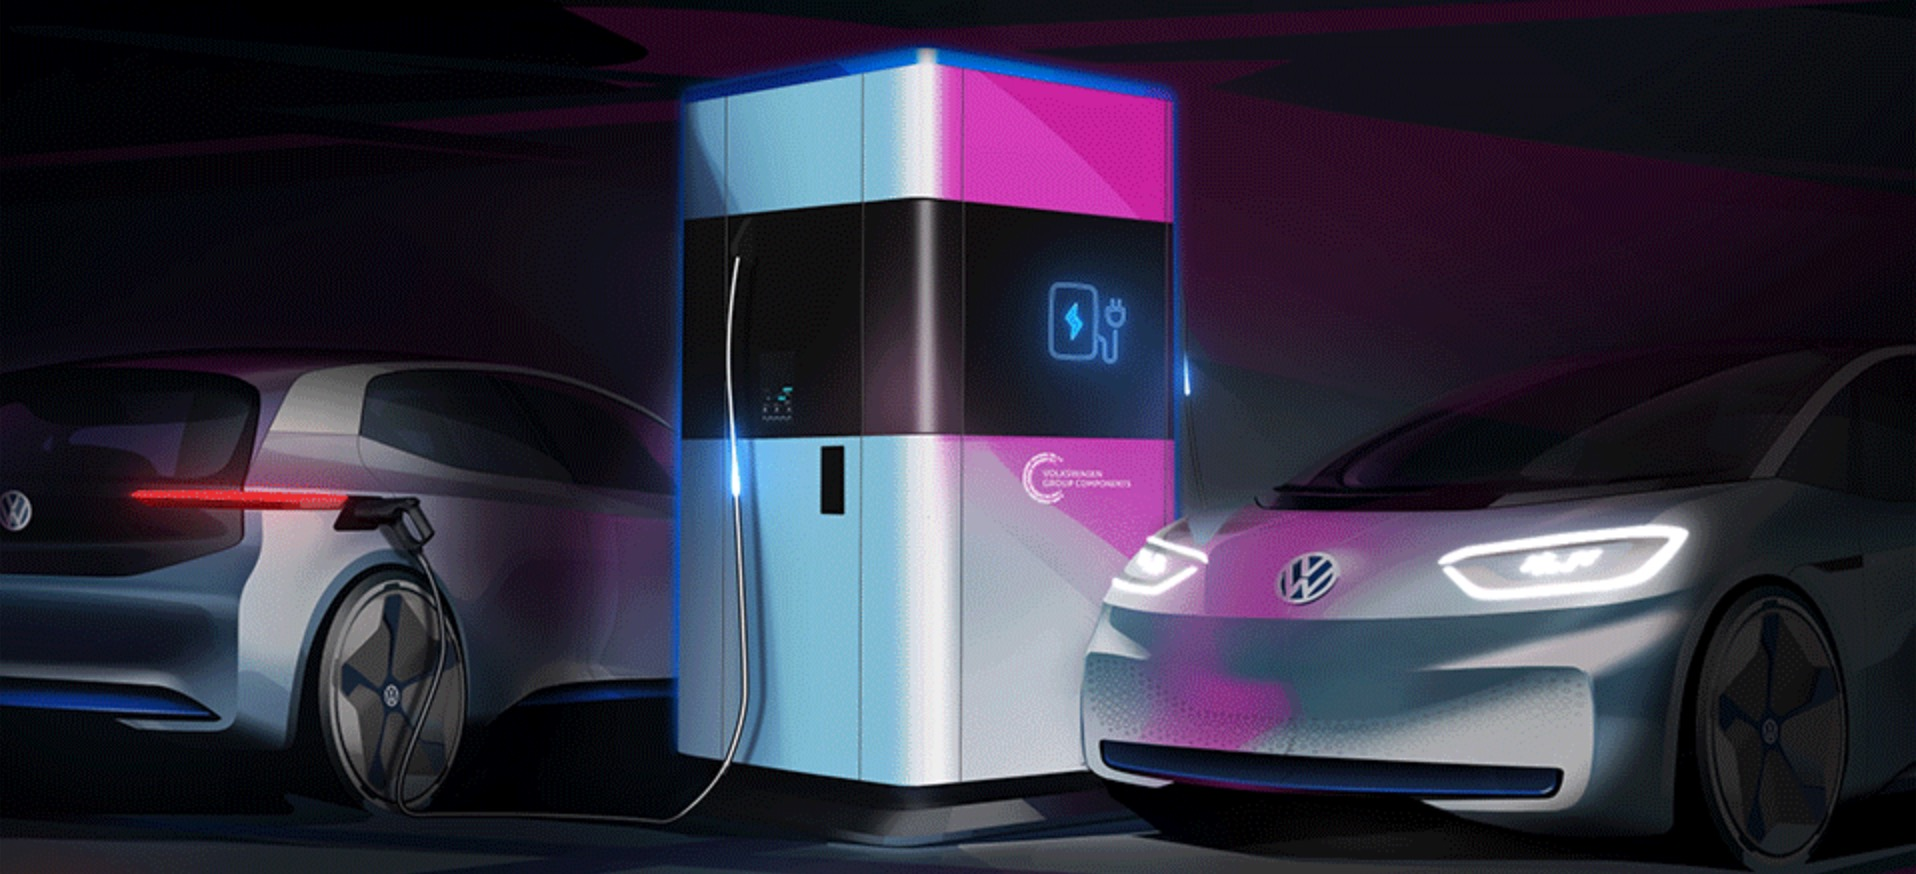 VW announces new mobile charging station with 360 kWh battery pack